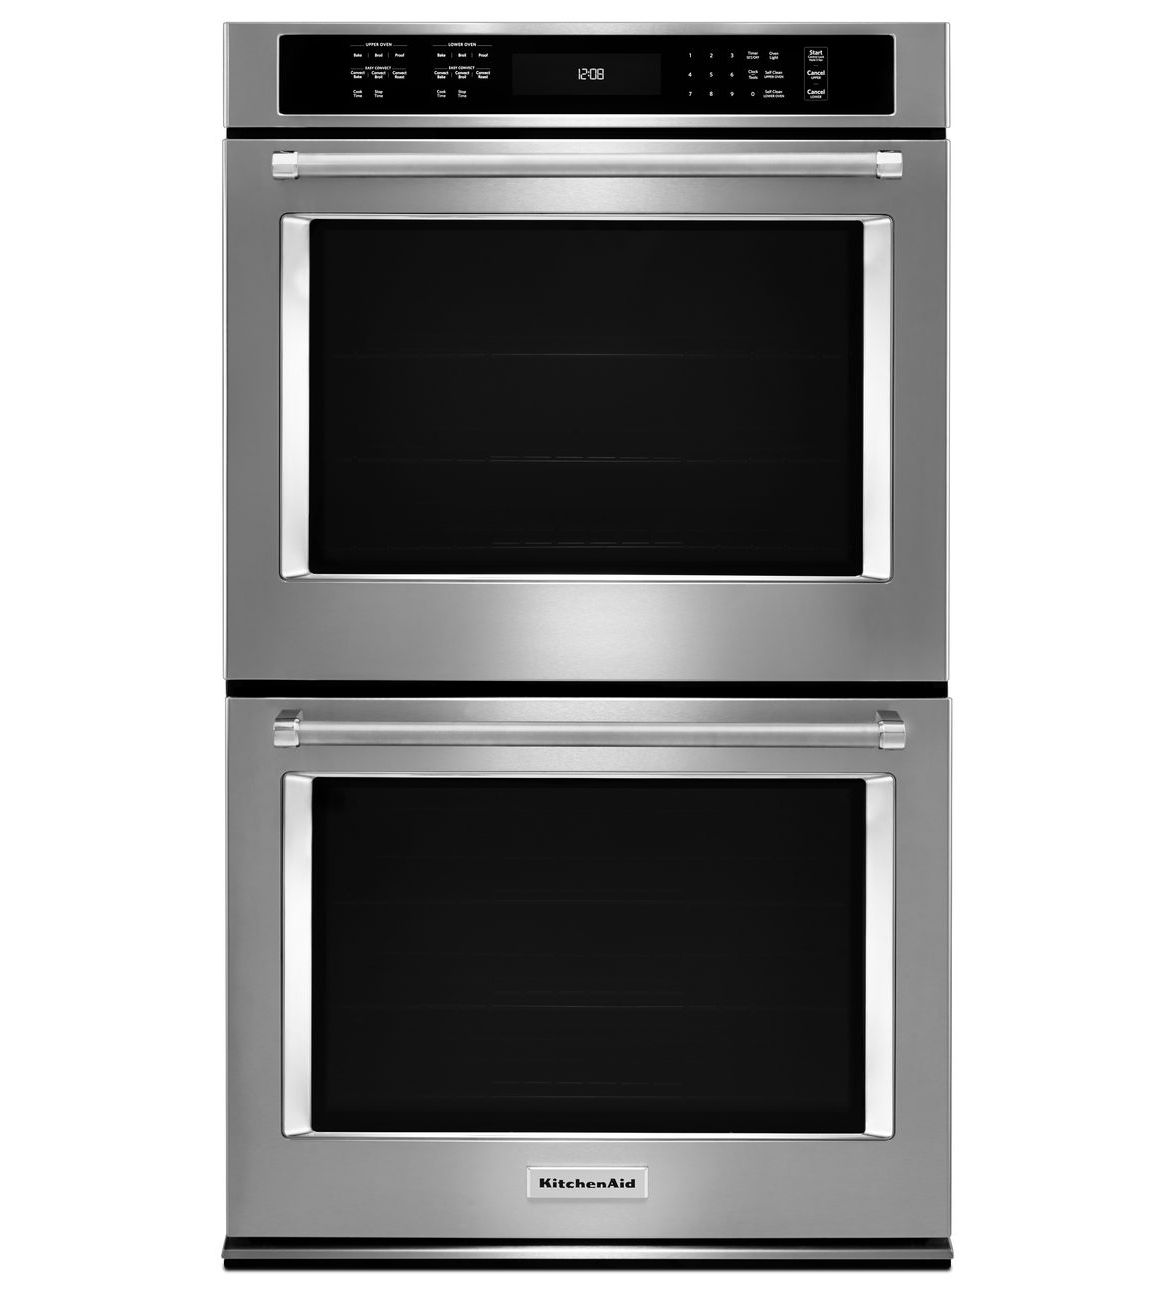 Kode500ess Kitchenaid 30 Quot Double Wall Oven With Even